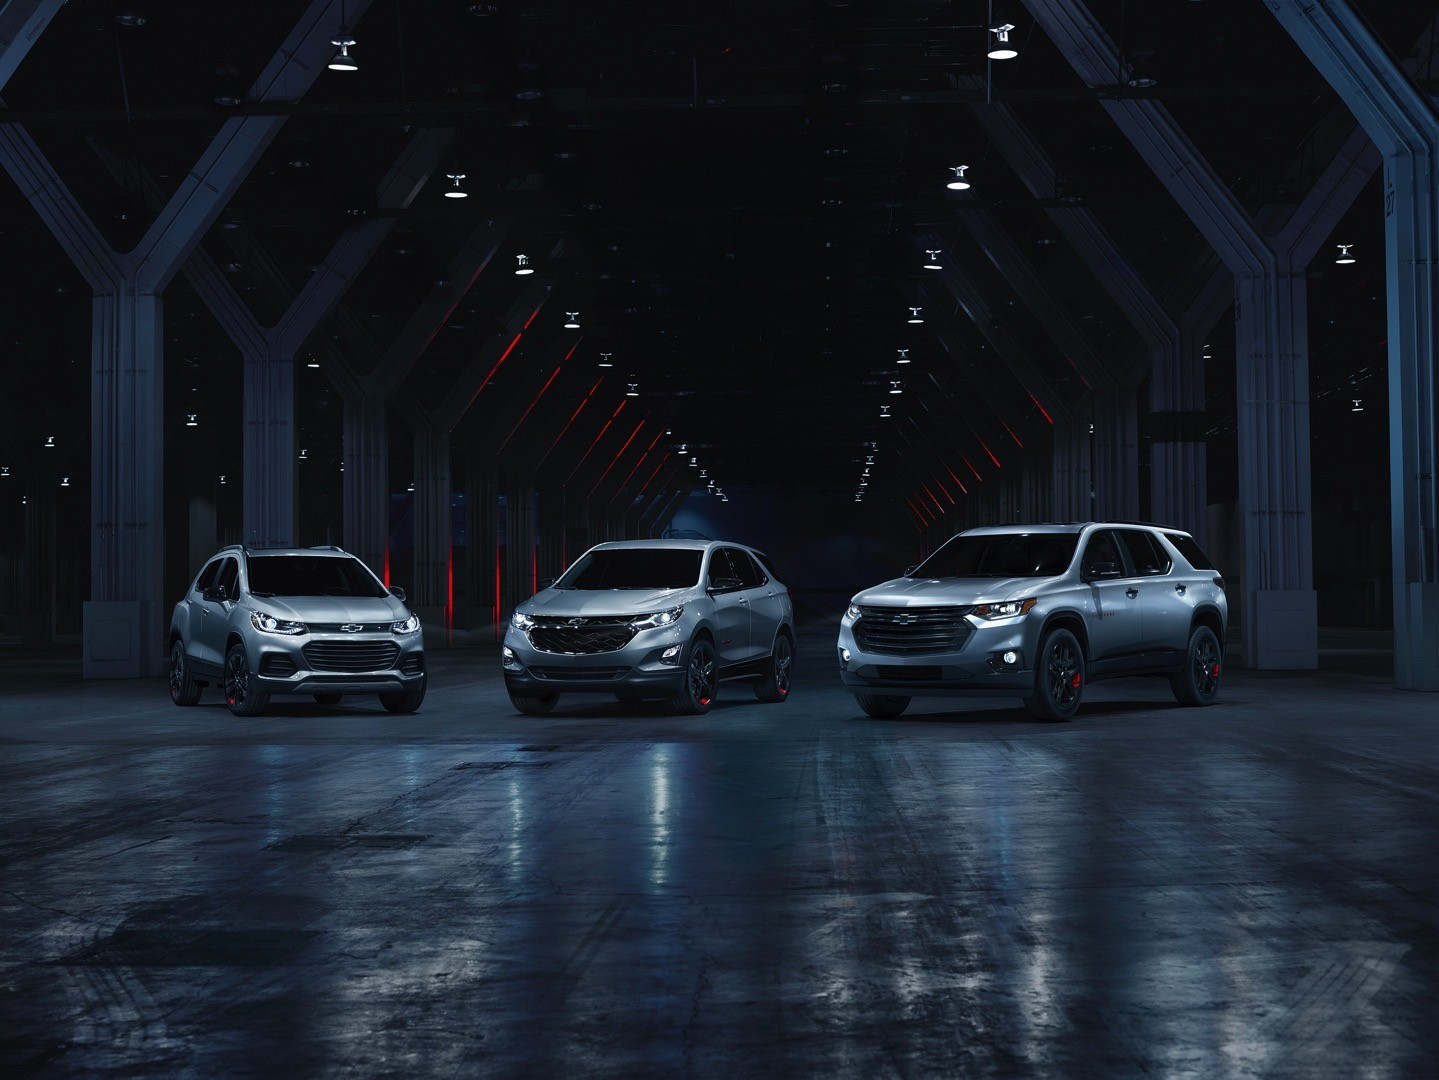 2018 Traverse Redline >> 2018 Chevrolet Traverse RS Disappoints In The Oily Bits Department - autoevolution